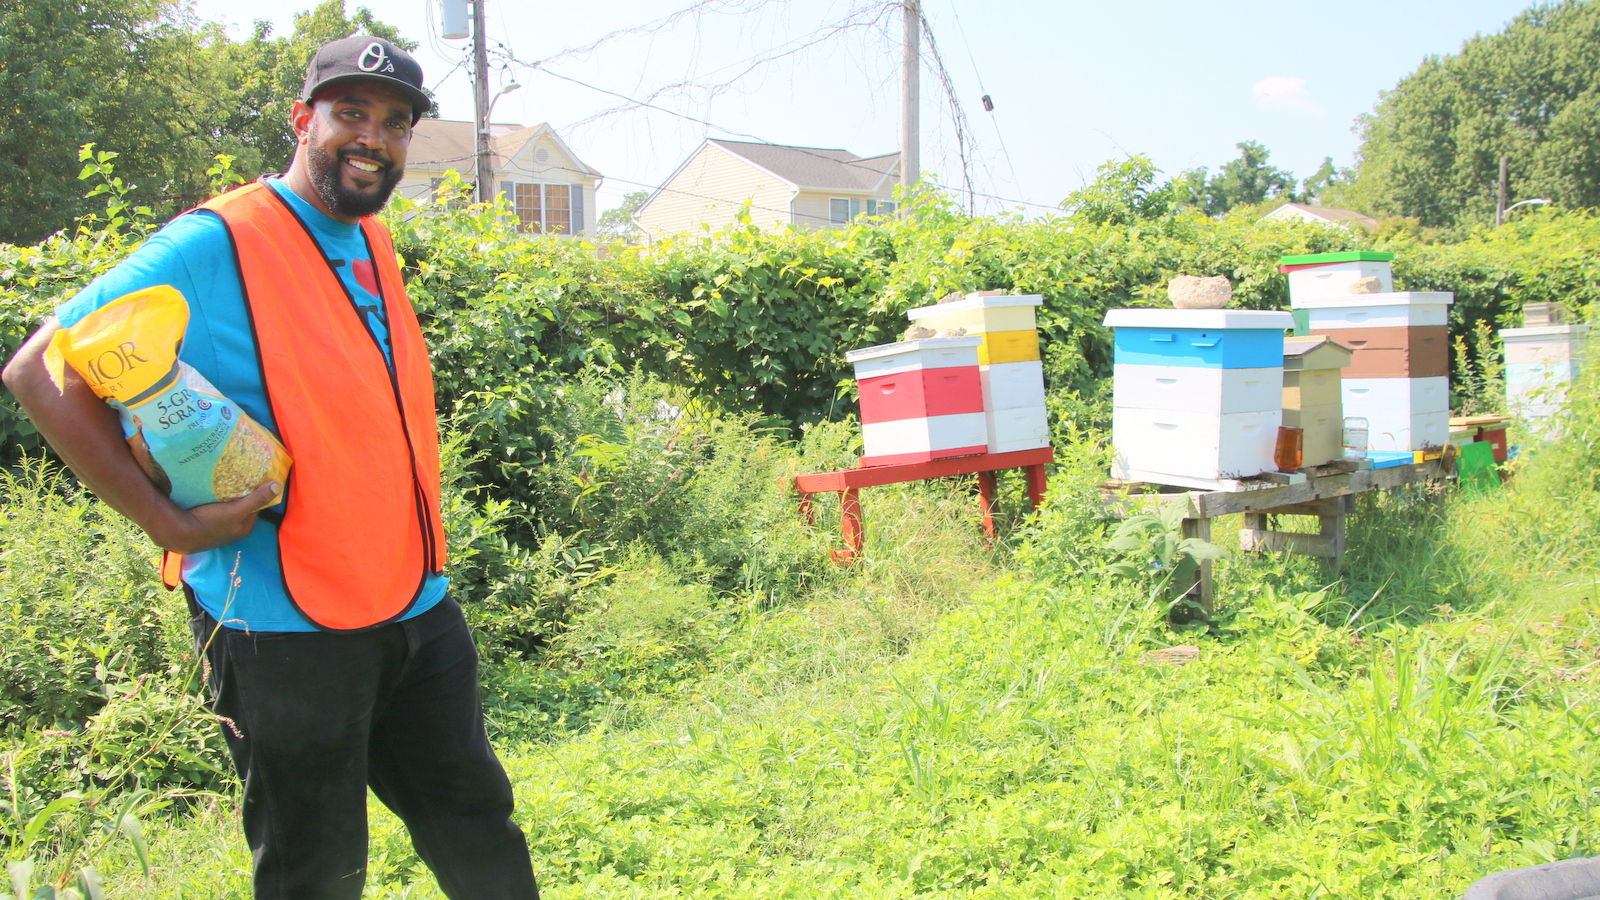 Honey from the apiary is another Filbert Street Community Garden product, Marvin Hayes explained. (Fern Shen)